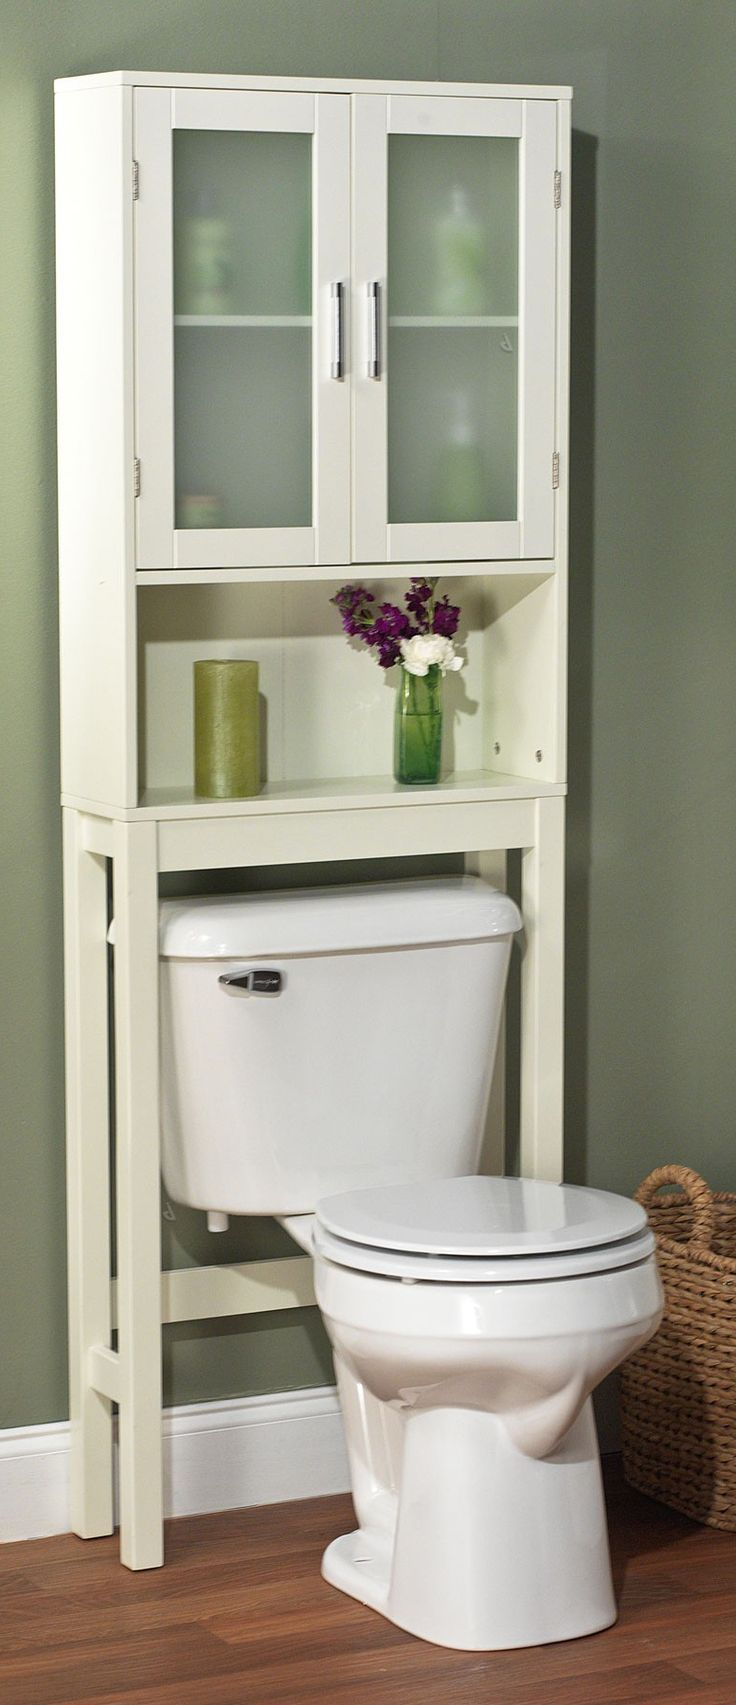 Bathroom space saver over toilet cupboard such a good for Bathroom cabinets small spaces